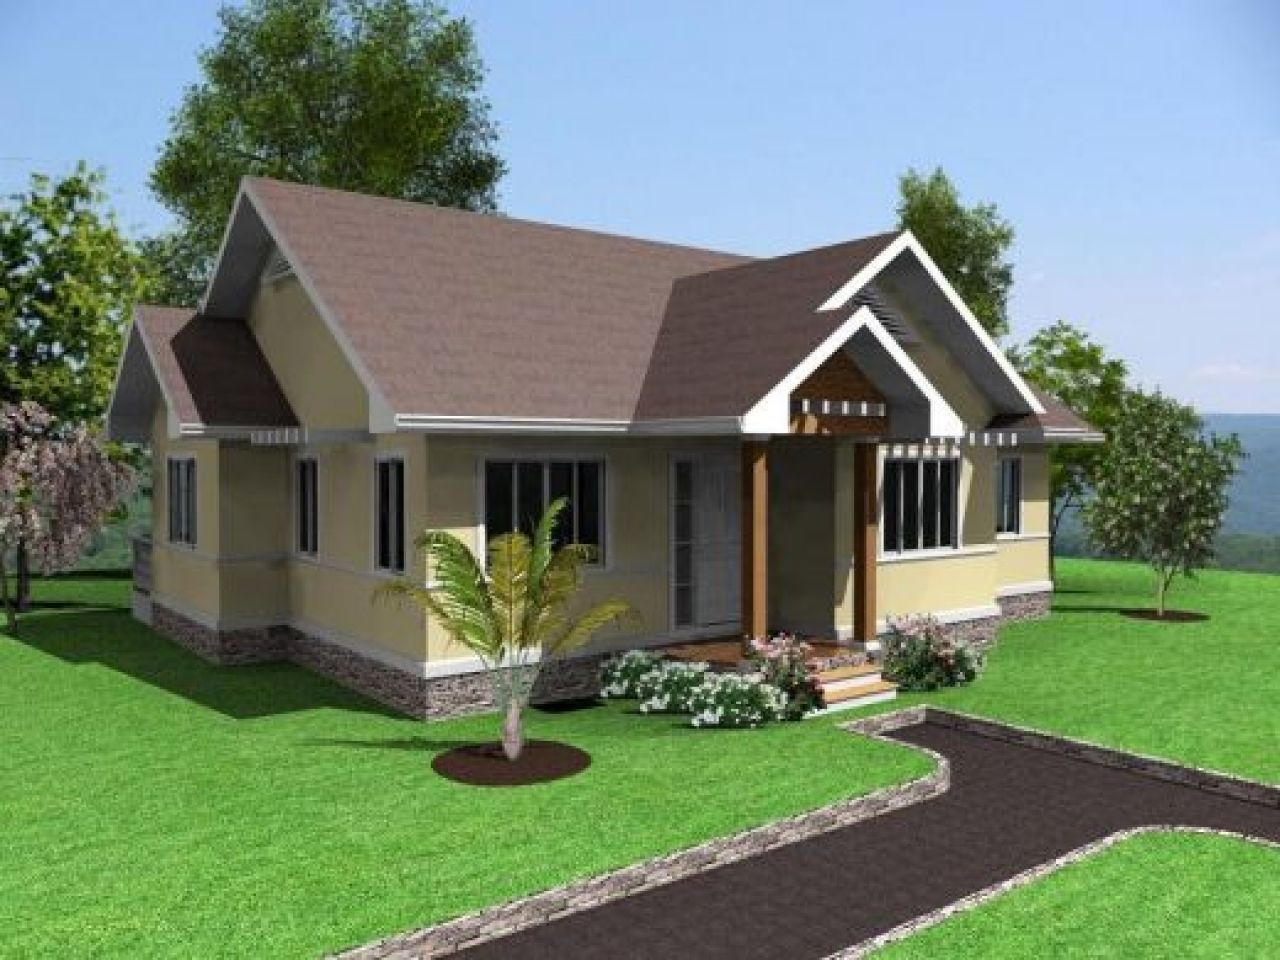 Simple house design 3 bedrooms in the philippines simple modern house designs lrg c49204d3ab244ccb